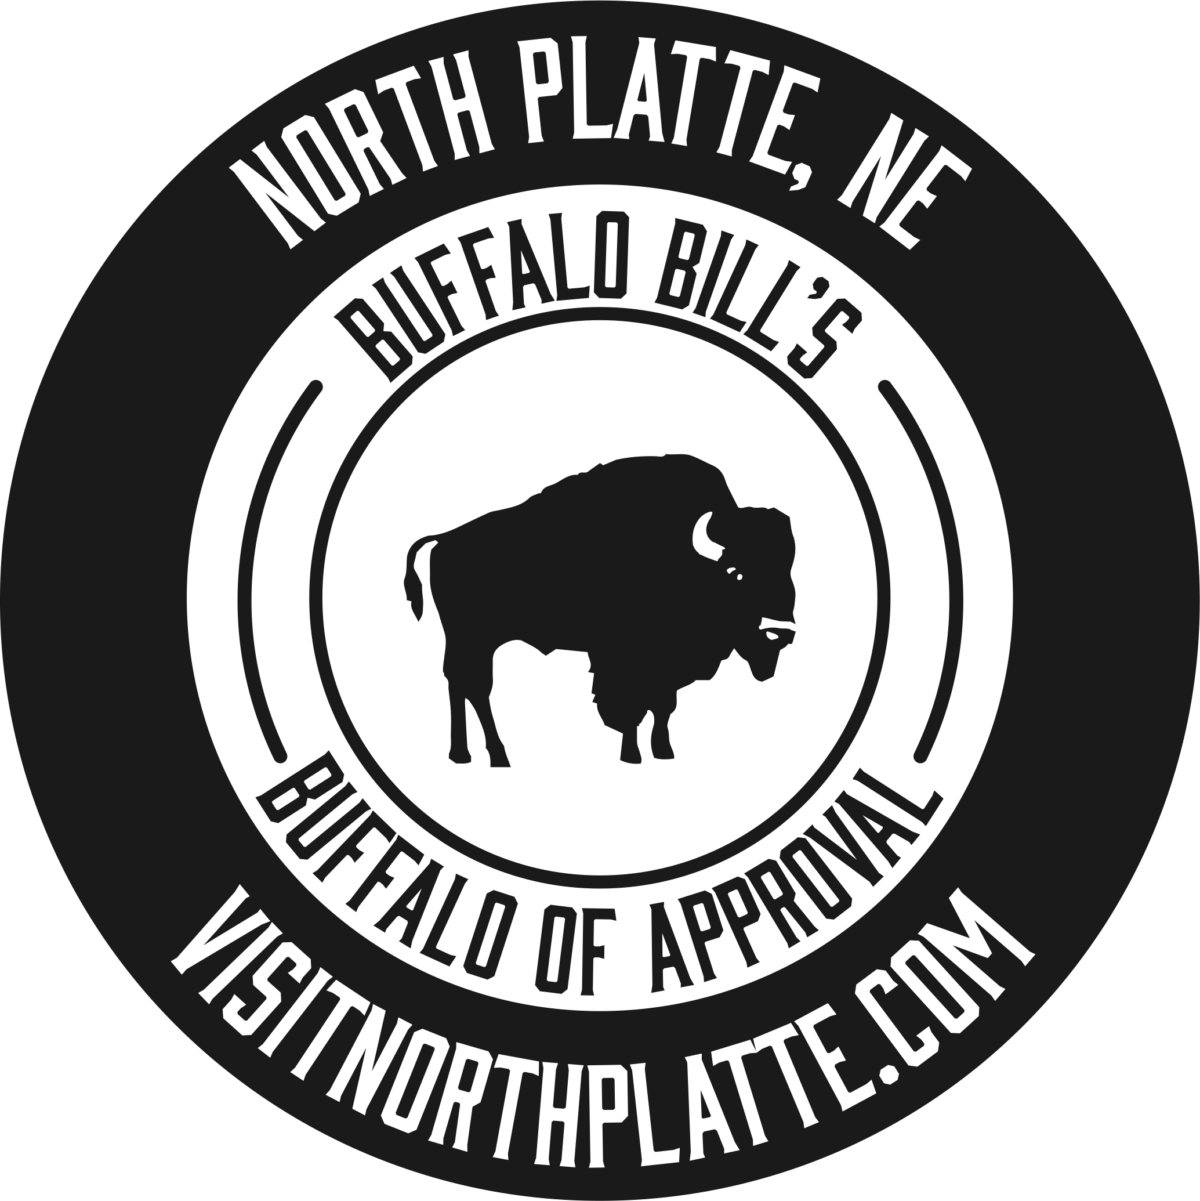 Buffalo Bill's Buffalo of Approval Seal